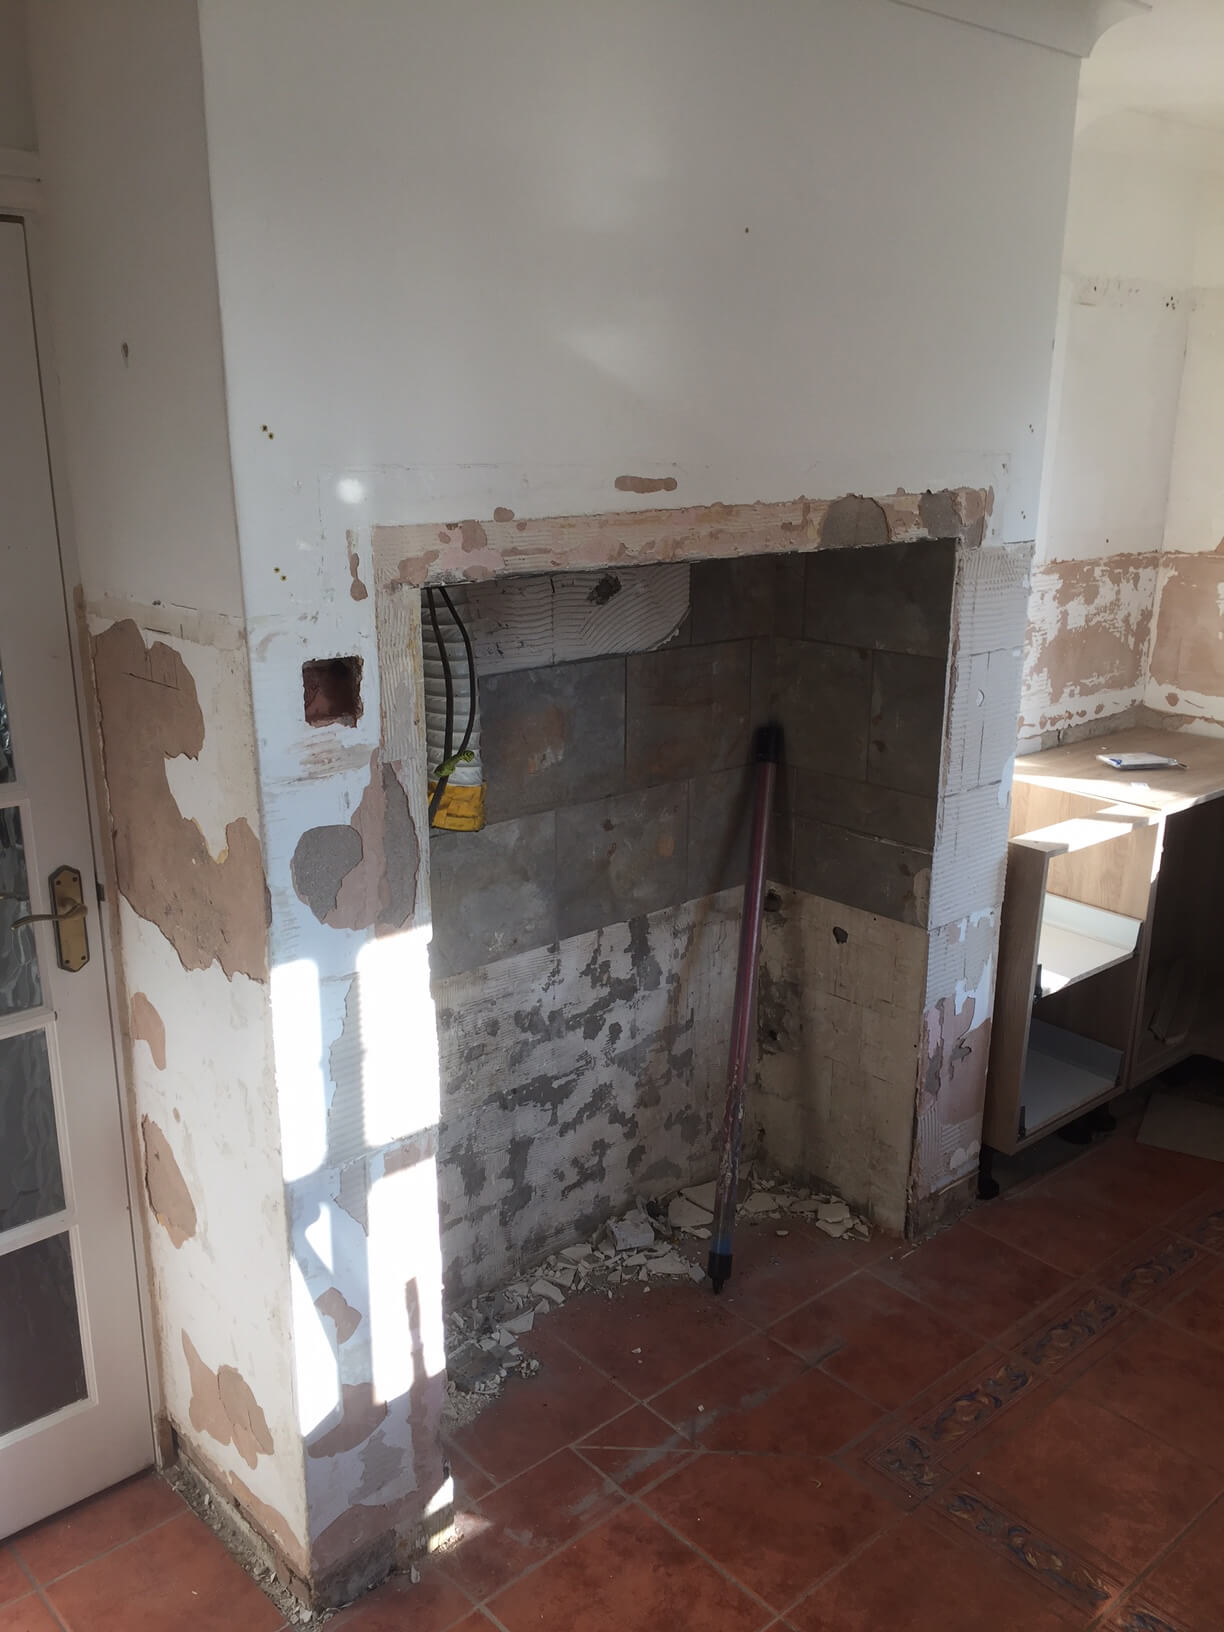 Original Symons Kitchen with the range removed